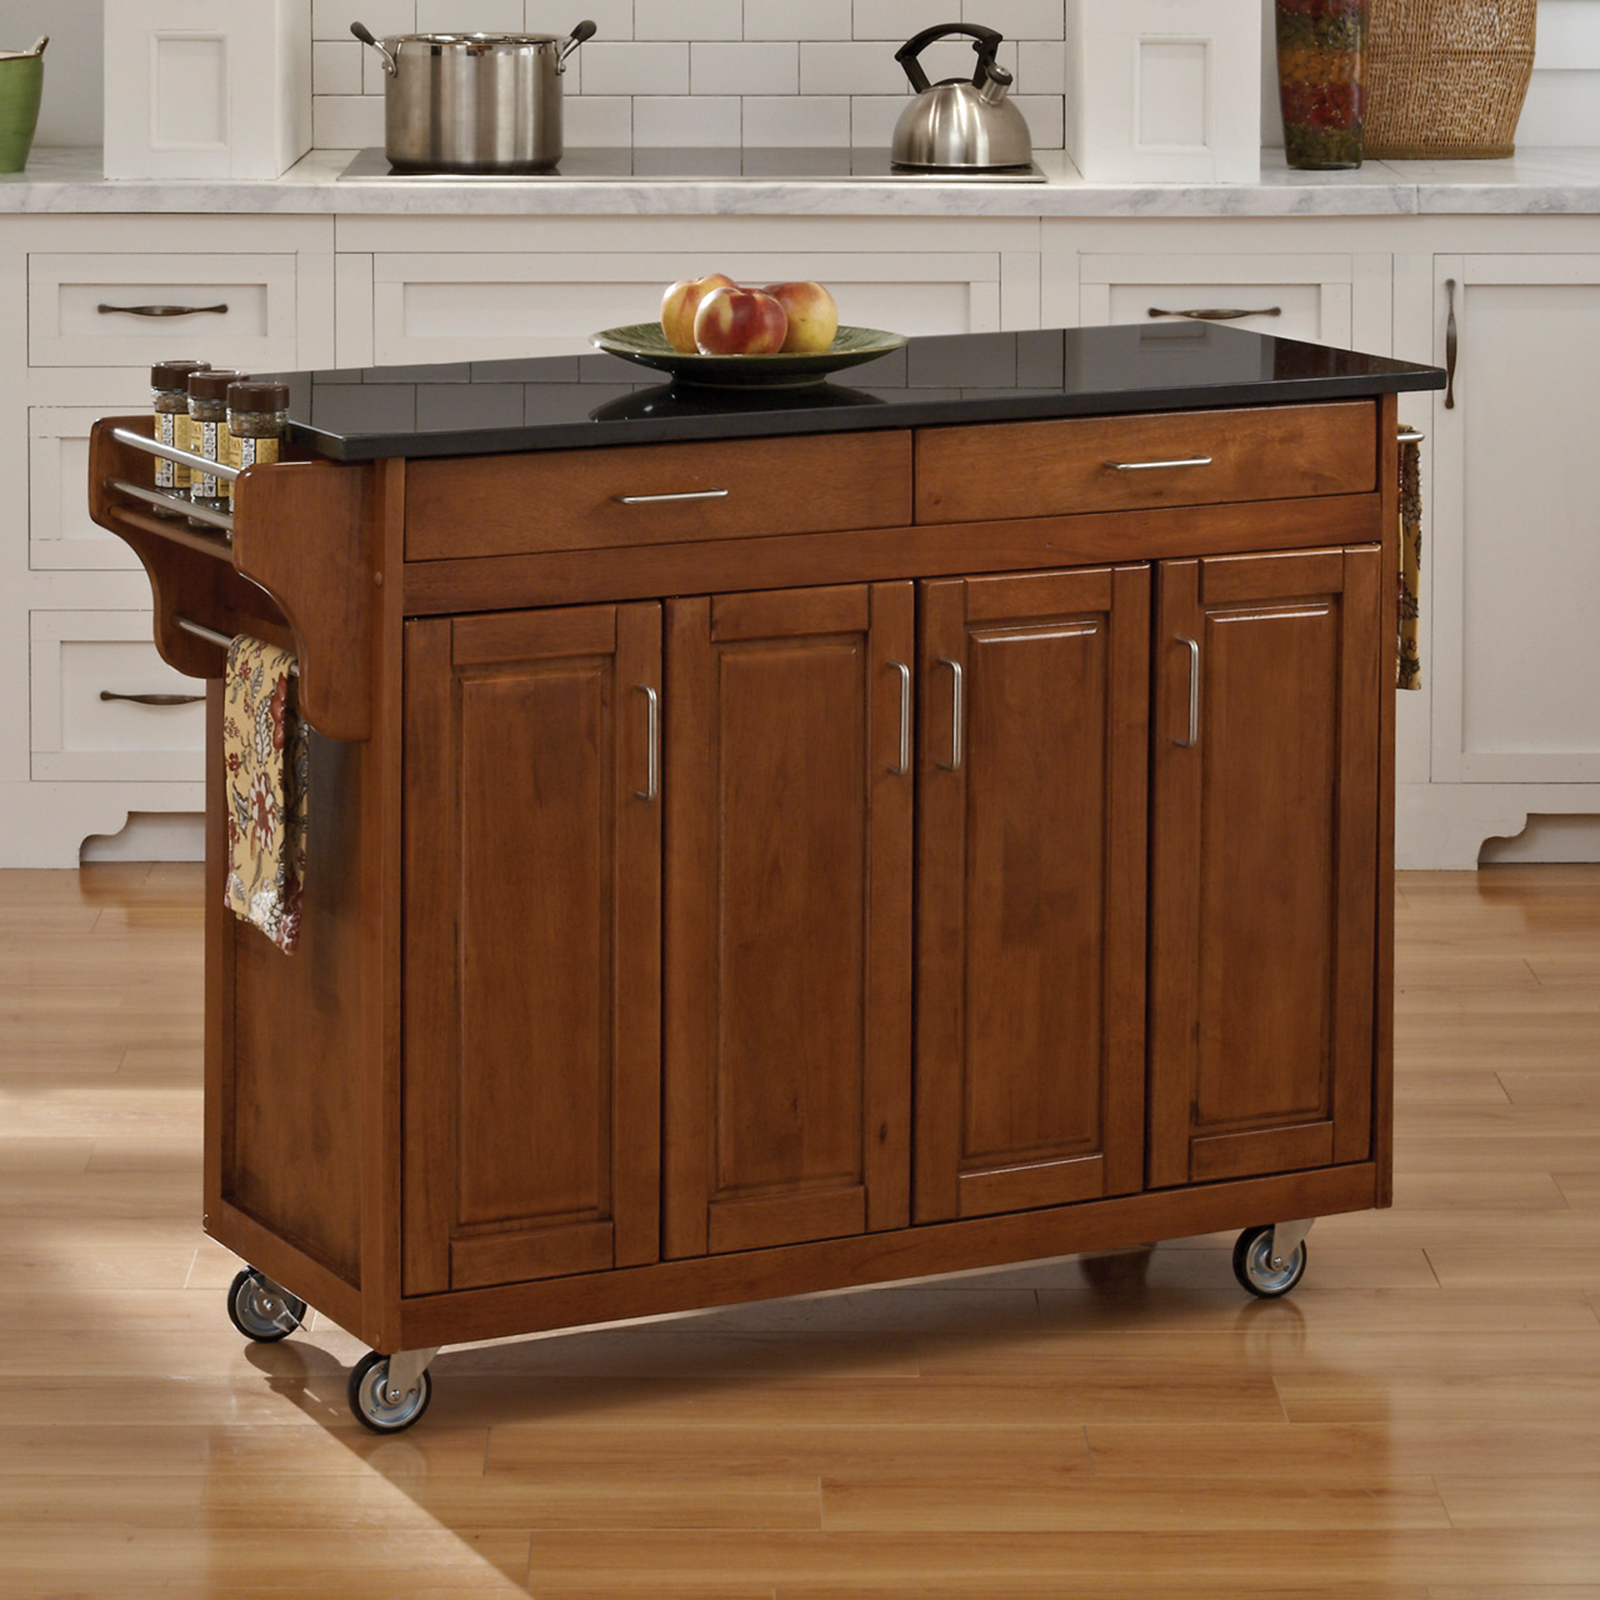 Beautiful Kitchen island Cart